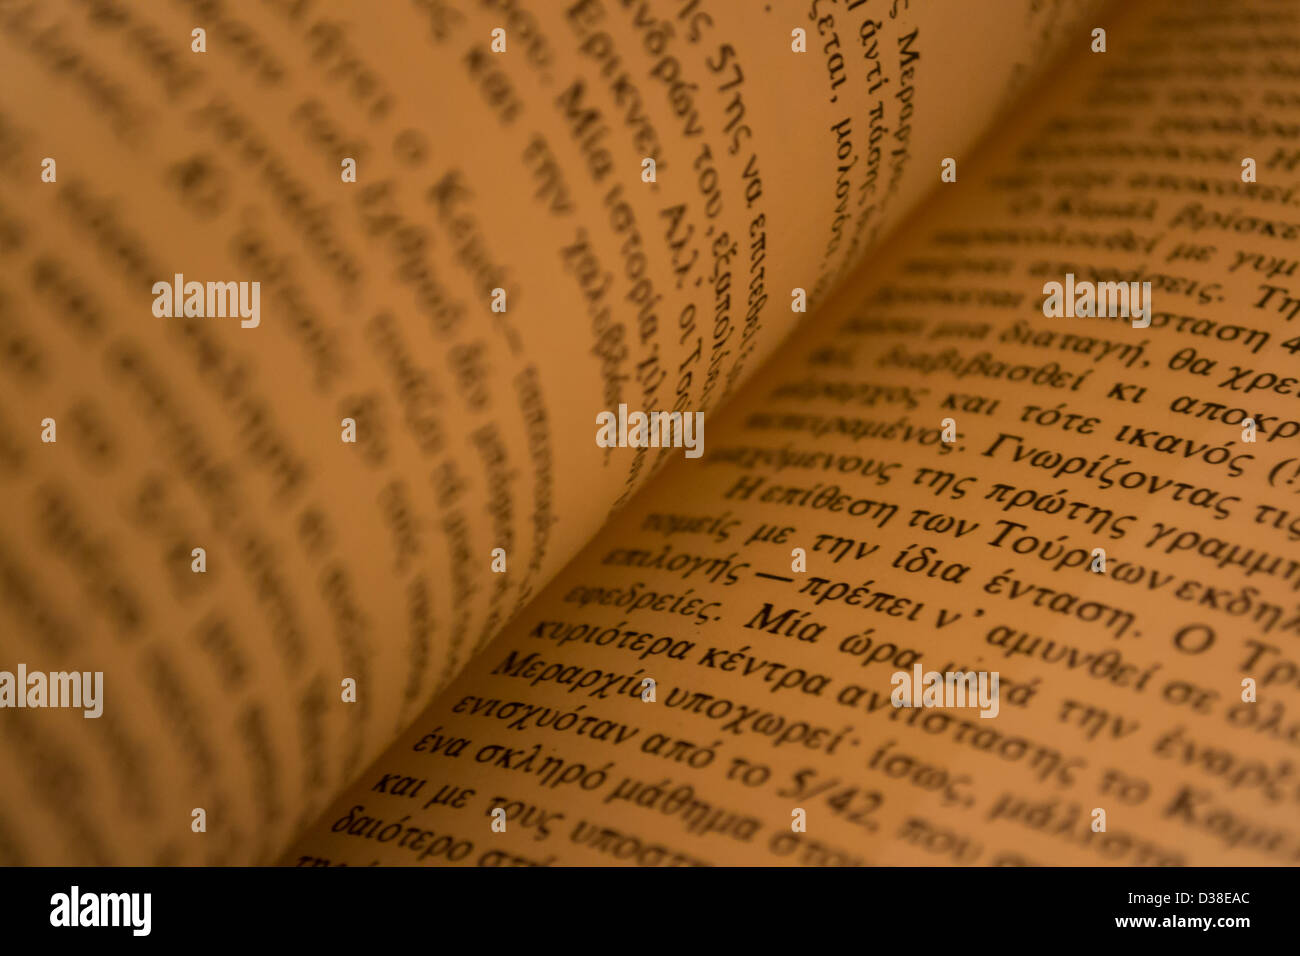 A Greek book. - Stock Image